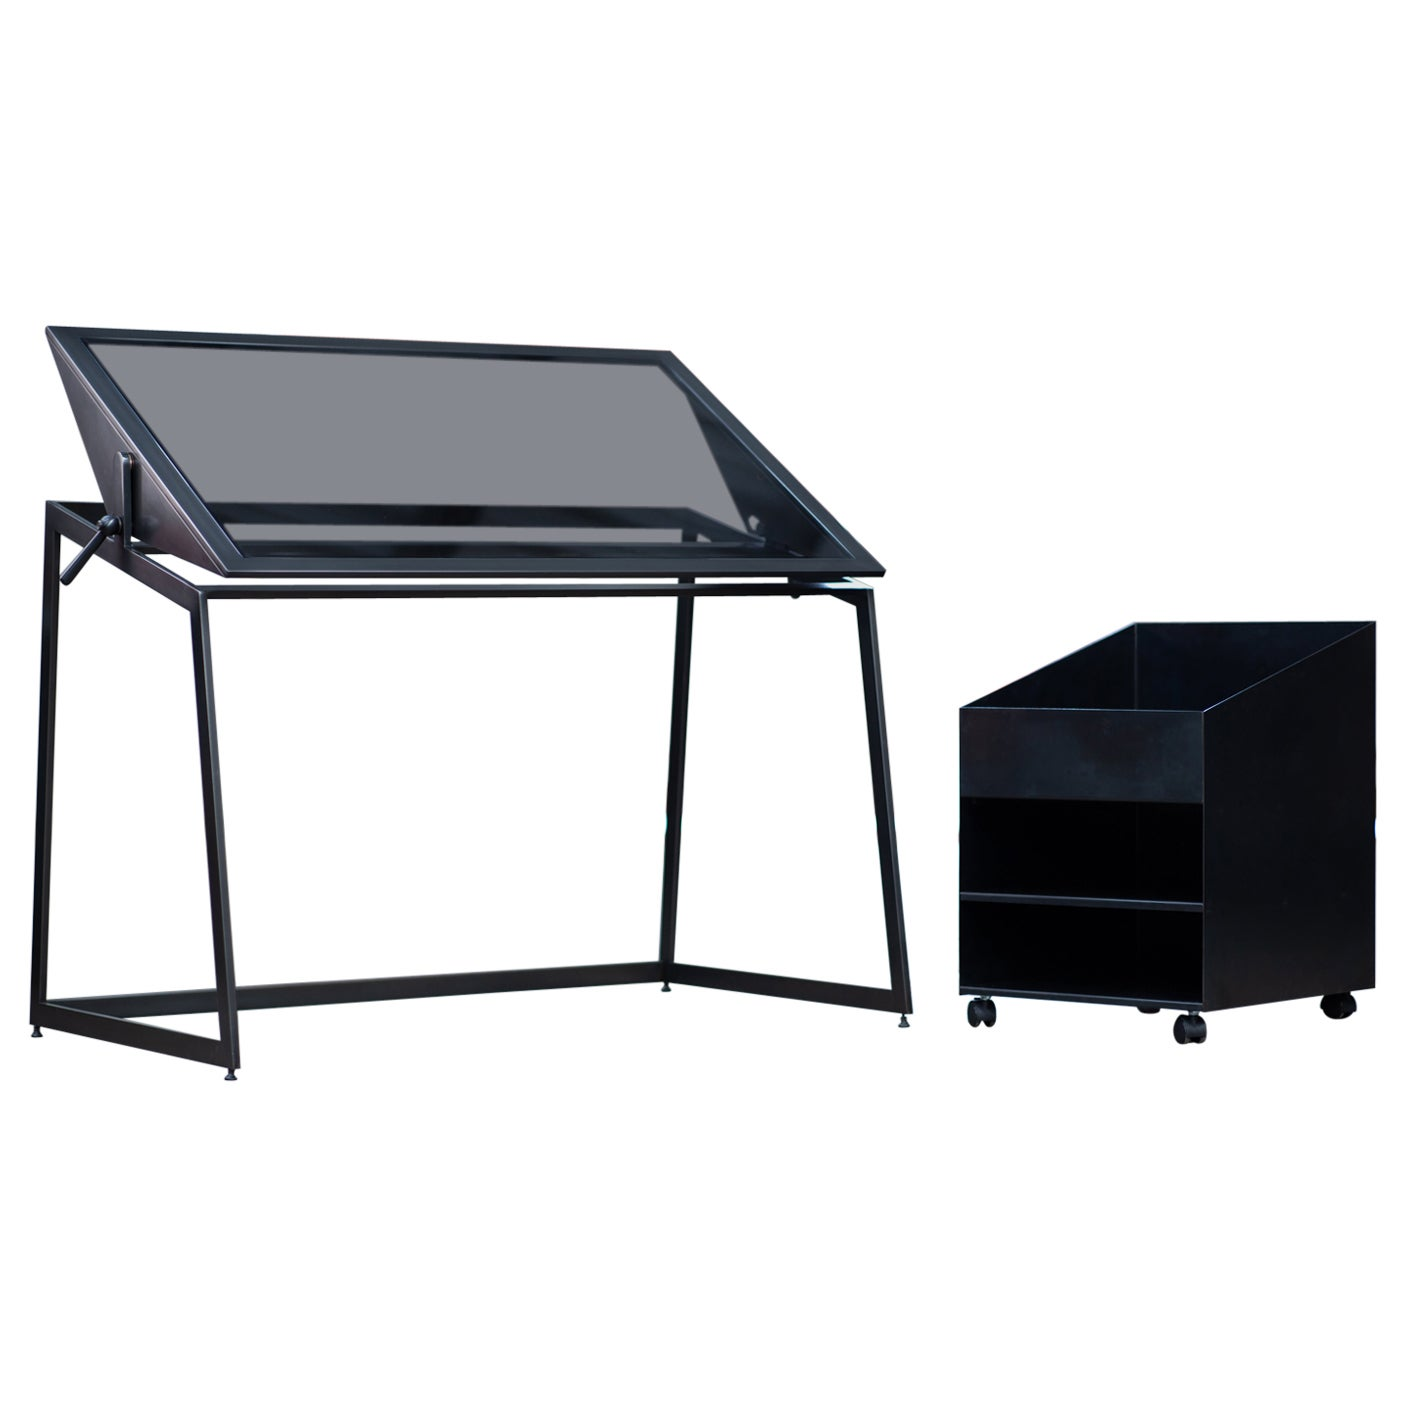 Drafting Table and Caddy in Blackened Steel and Smoked Glass by Force/Collide